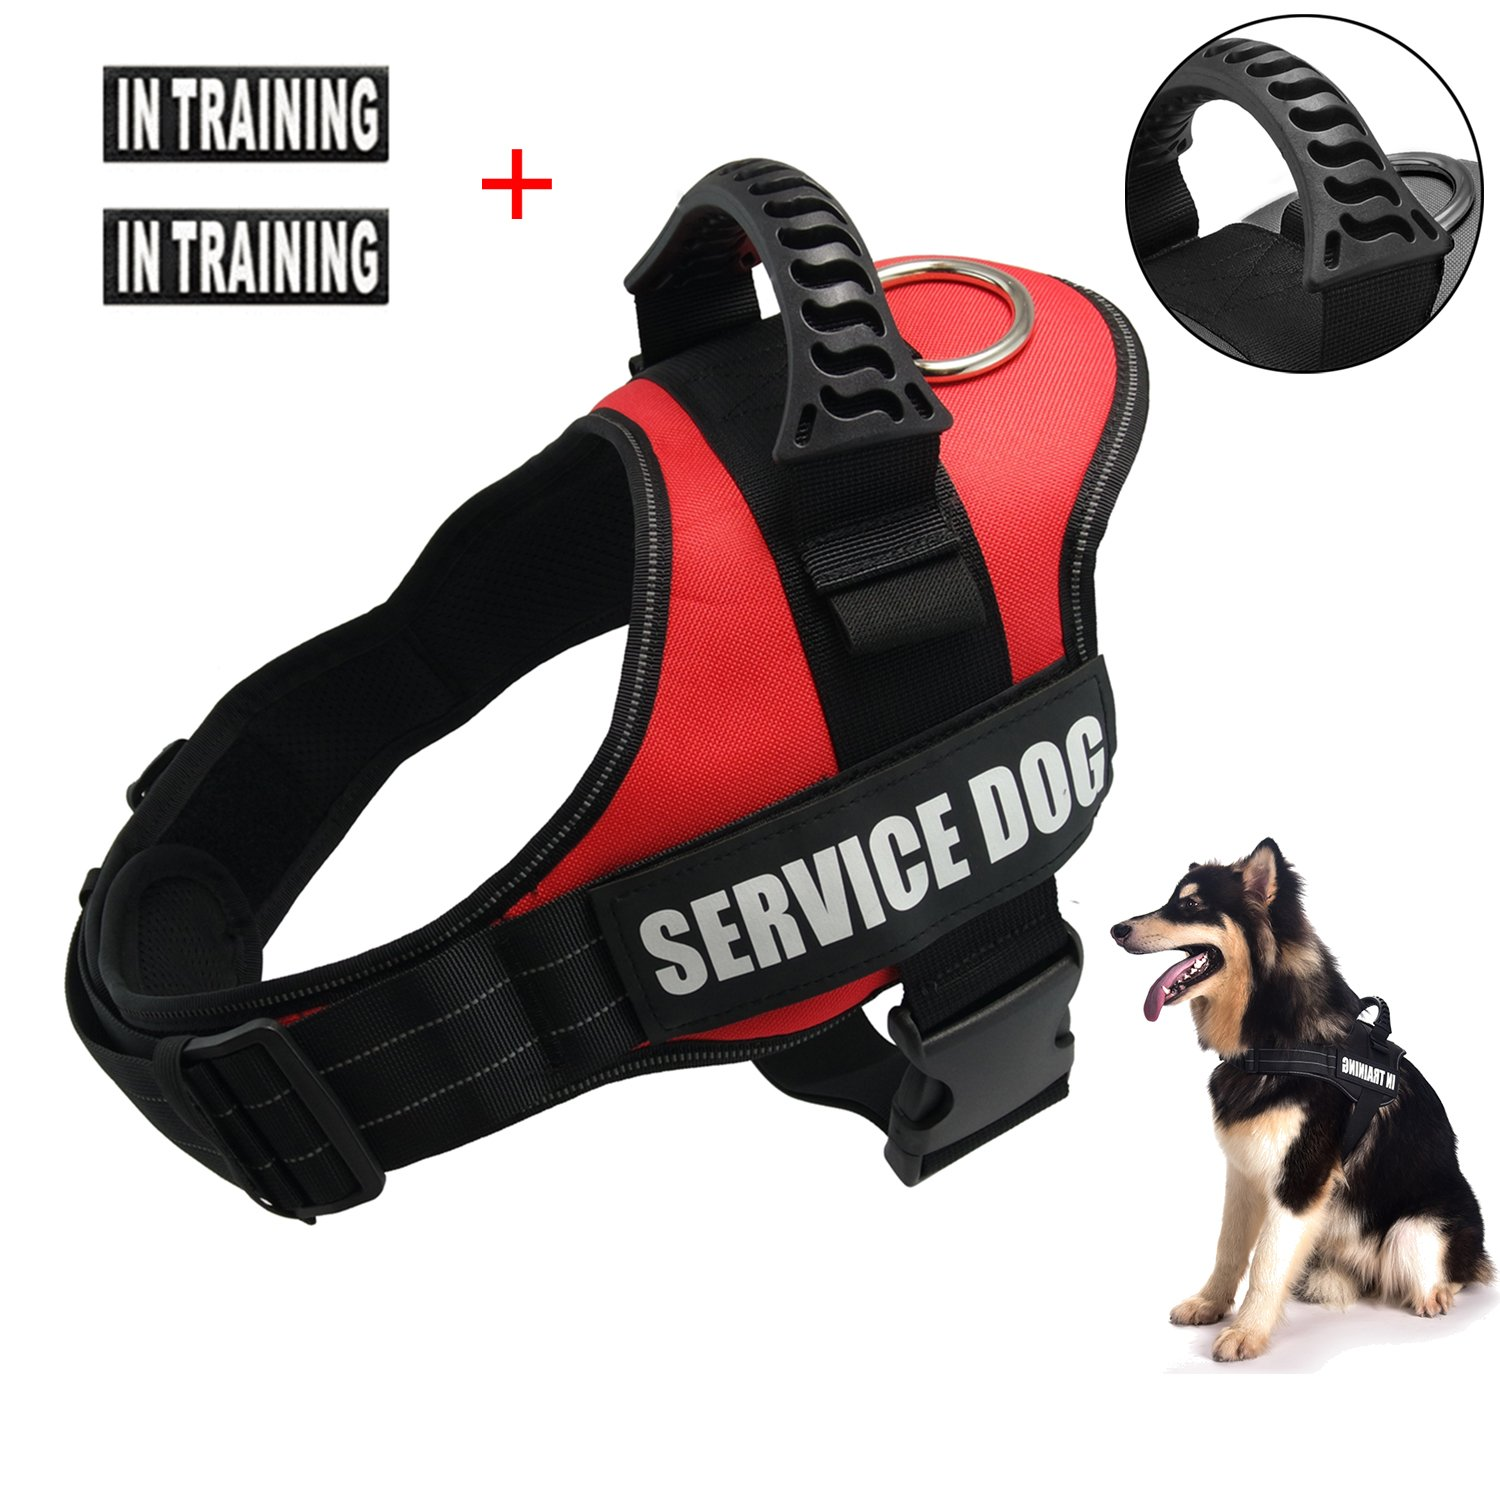 Servcie dog In Training Vest Harness-Reflective Vest wih Comfortable Handle for Medium Dogs,Purchase Come with 2 Reflective IN TRAINING +Service Dog Velcro Patches-Size M